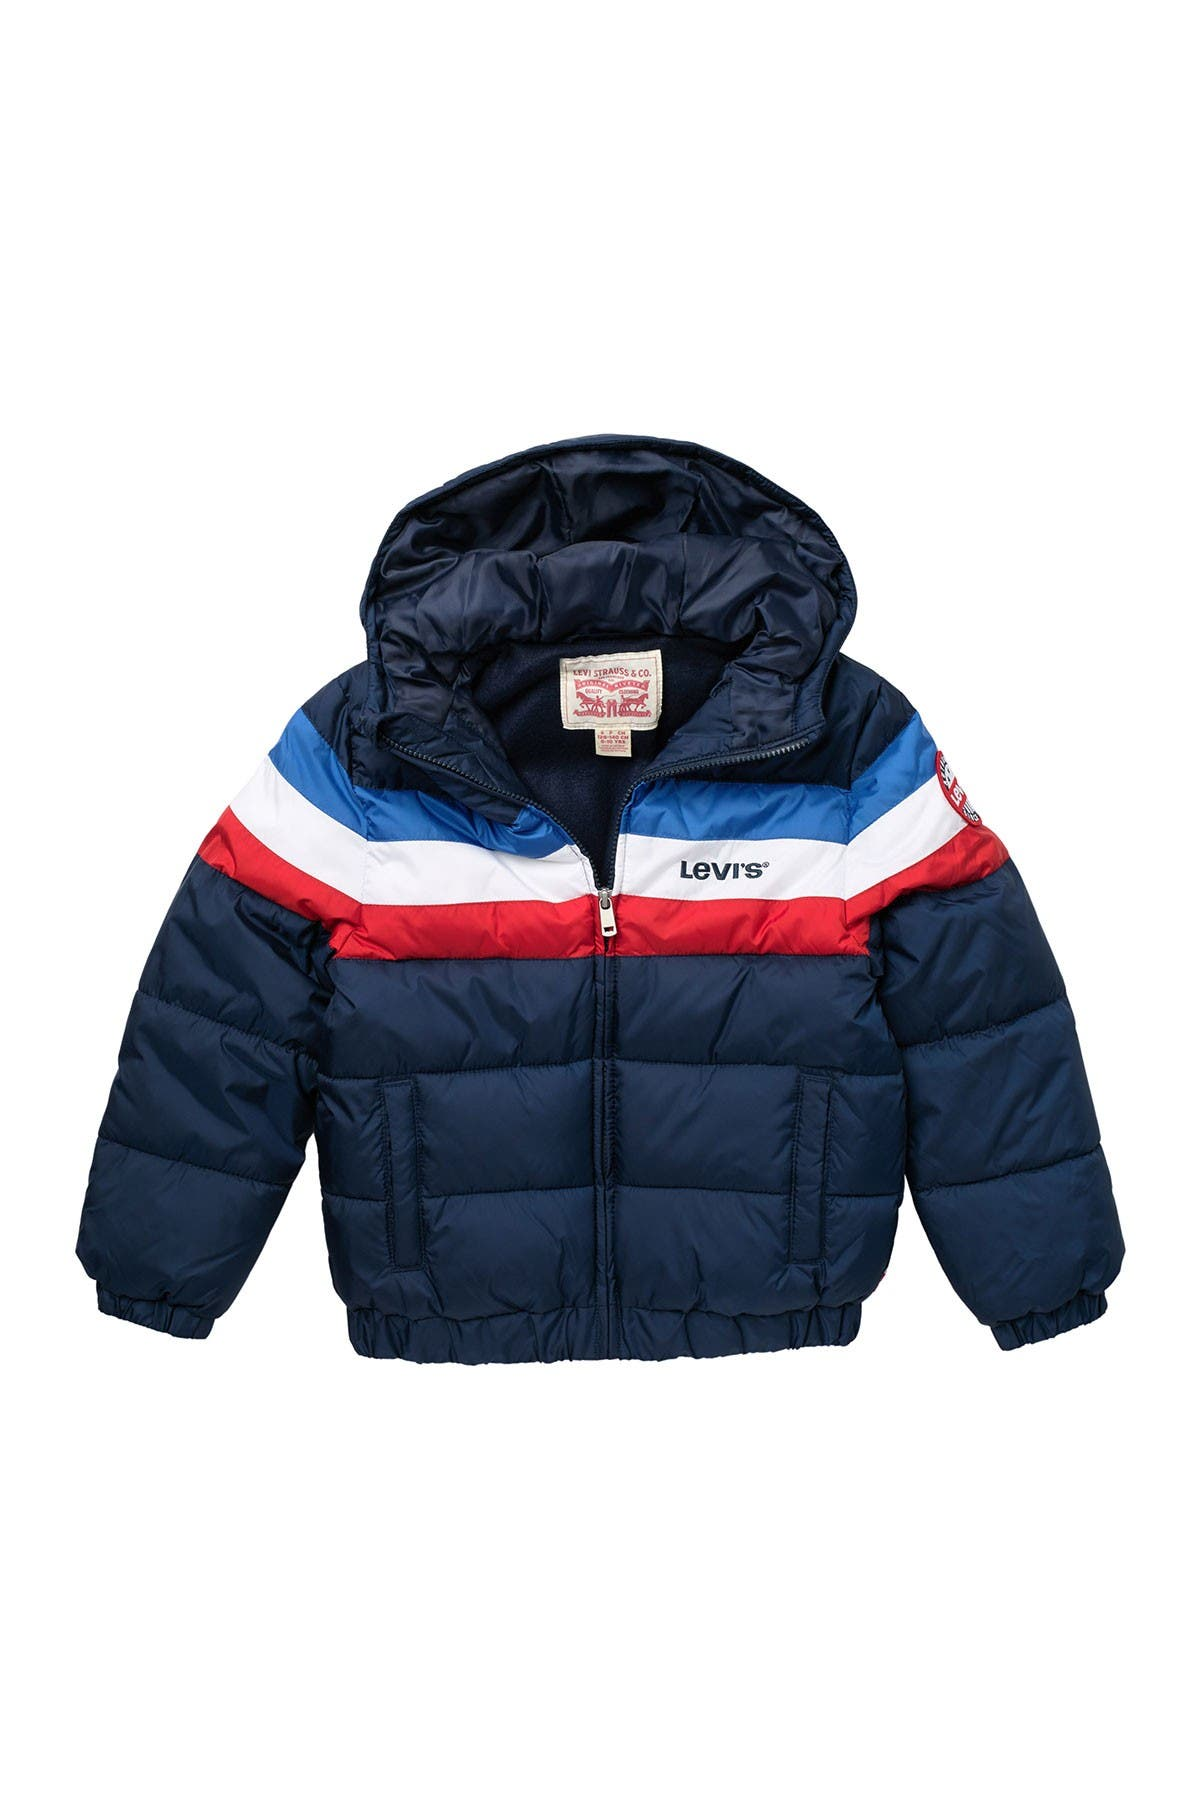 Image of Levi's Colorblock Puffer Jacket